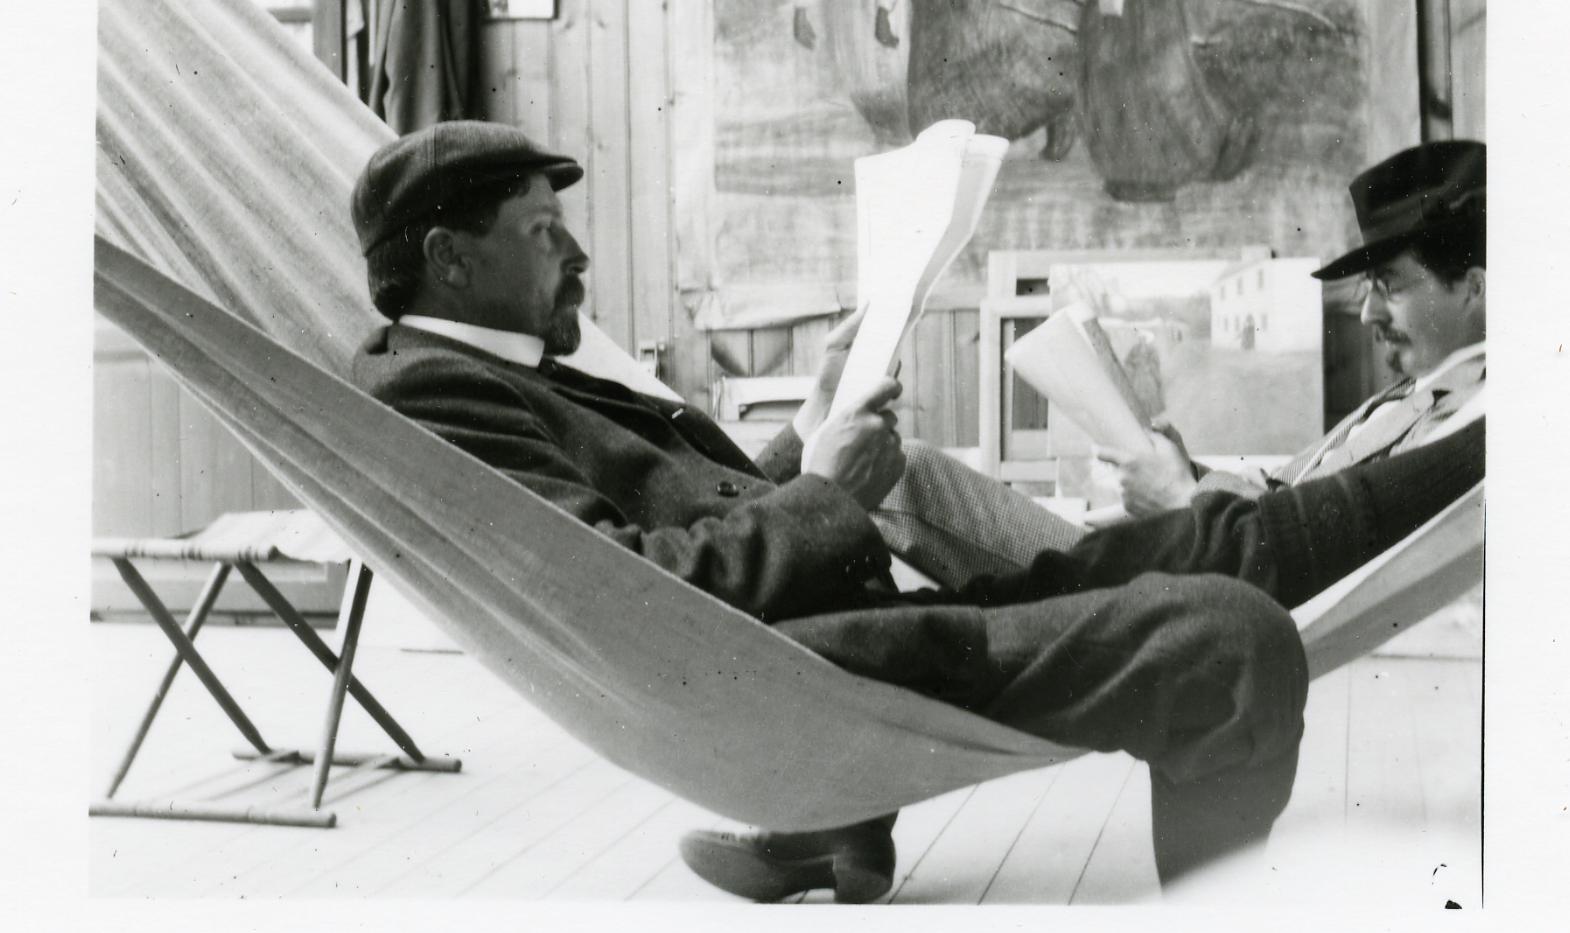 Designed by John Gaw Meem, one of the best known architects of the Southwest, the Harwood addition became one of the tallest adobe structures in northern New Mexico, and included an auditorium, stage, exhibition space, and a library facility. Here Burt relaxes.